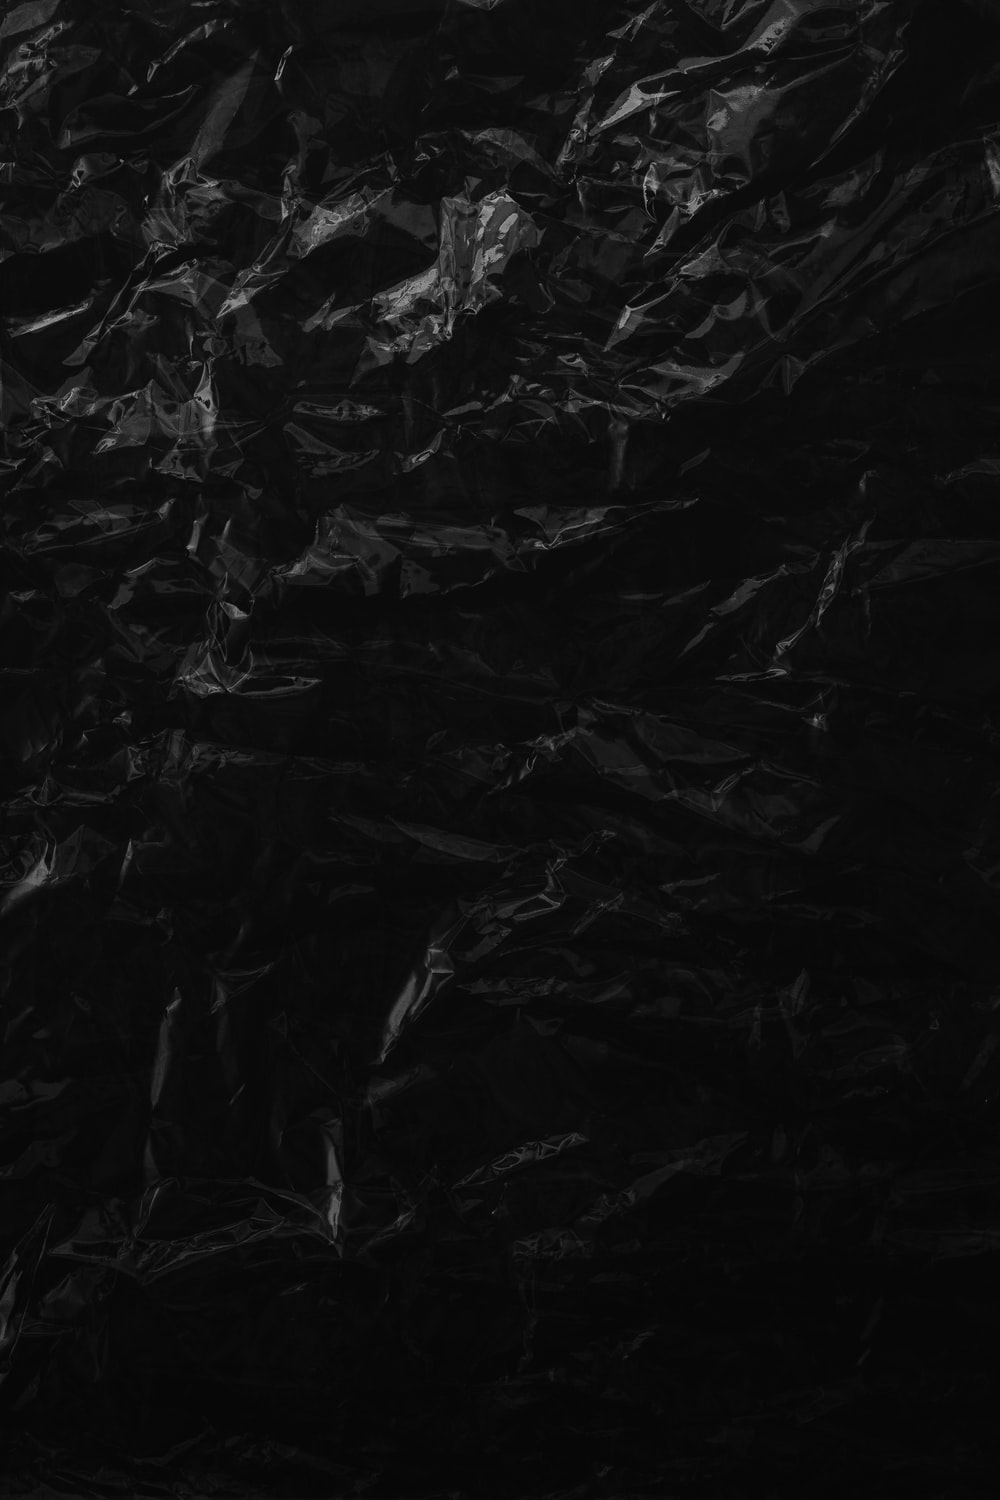 black and white abstract painting